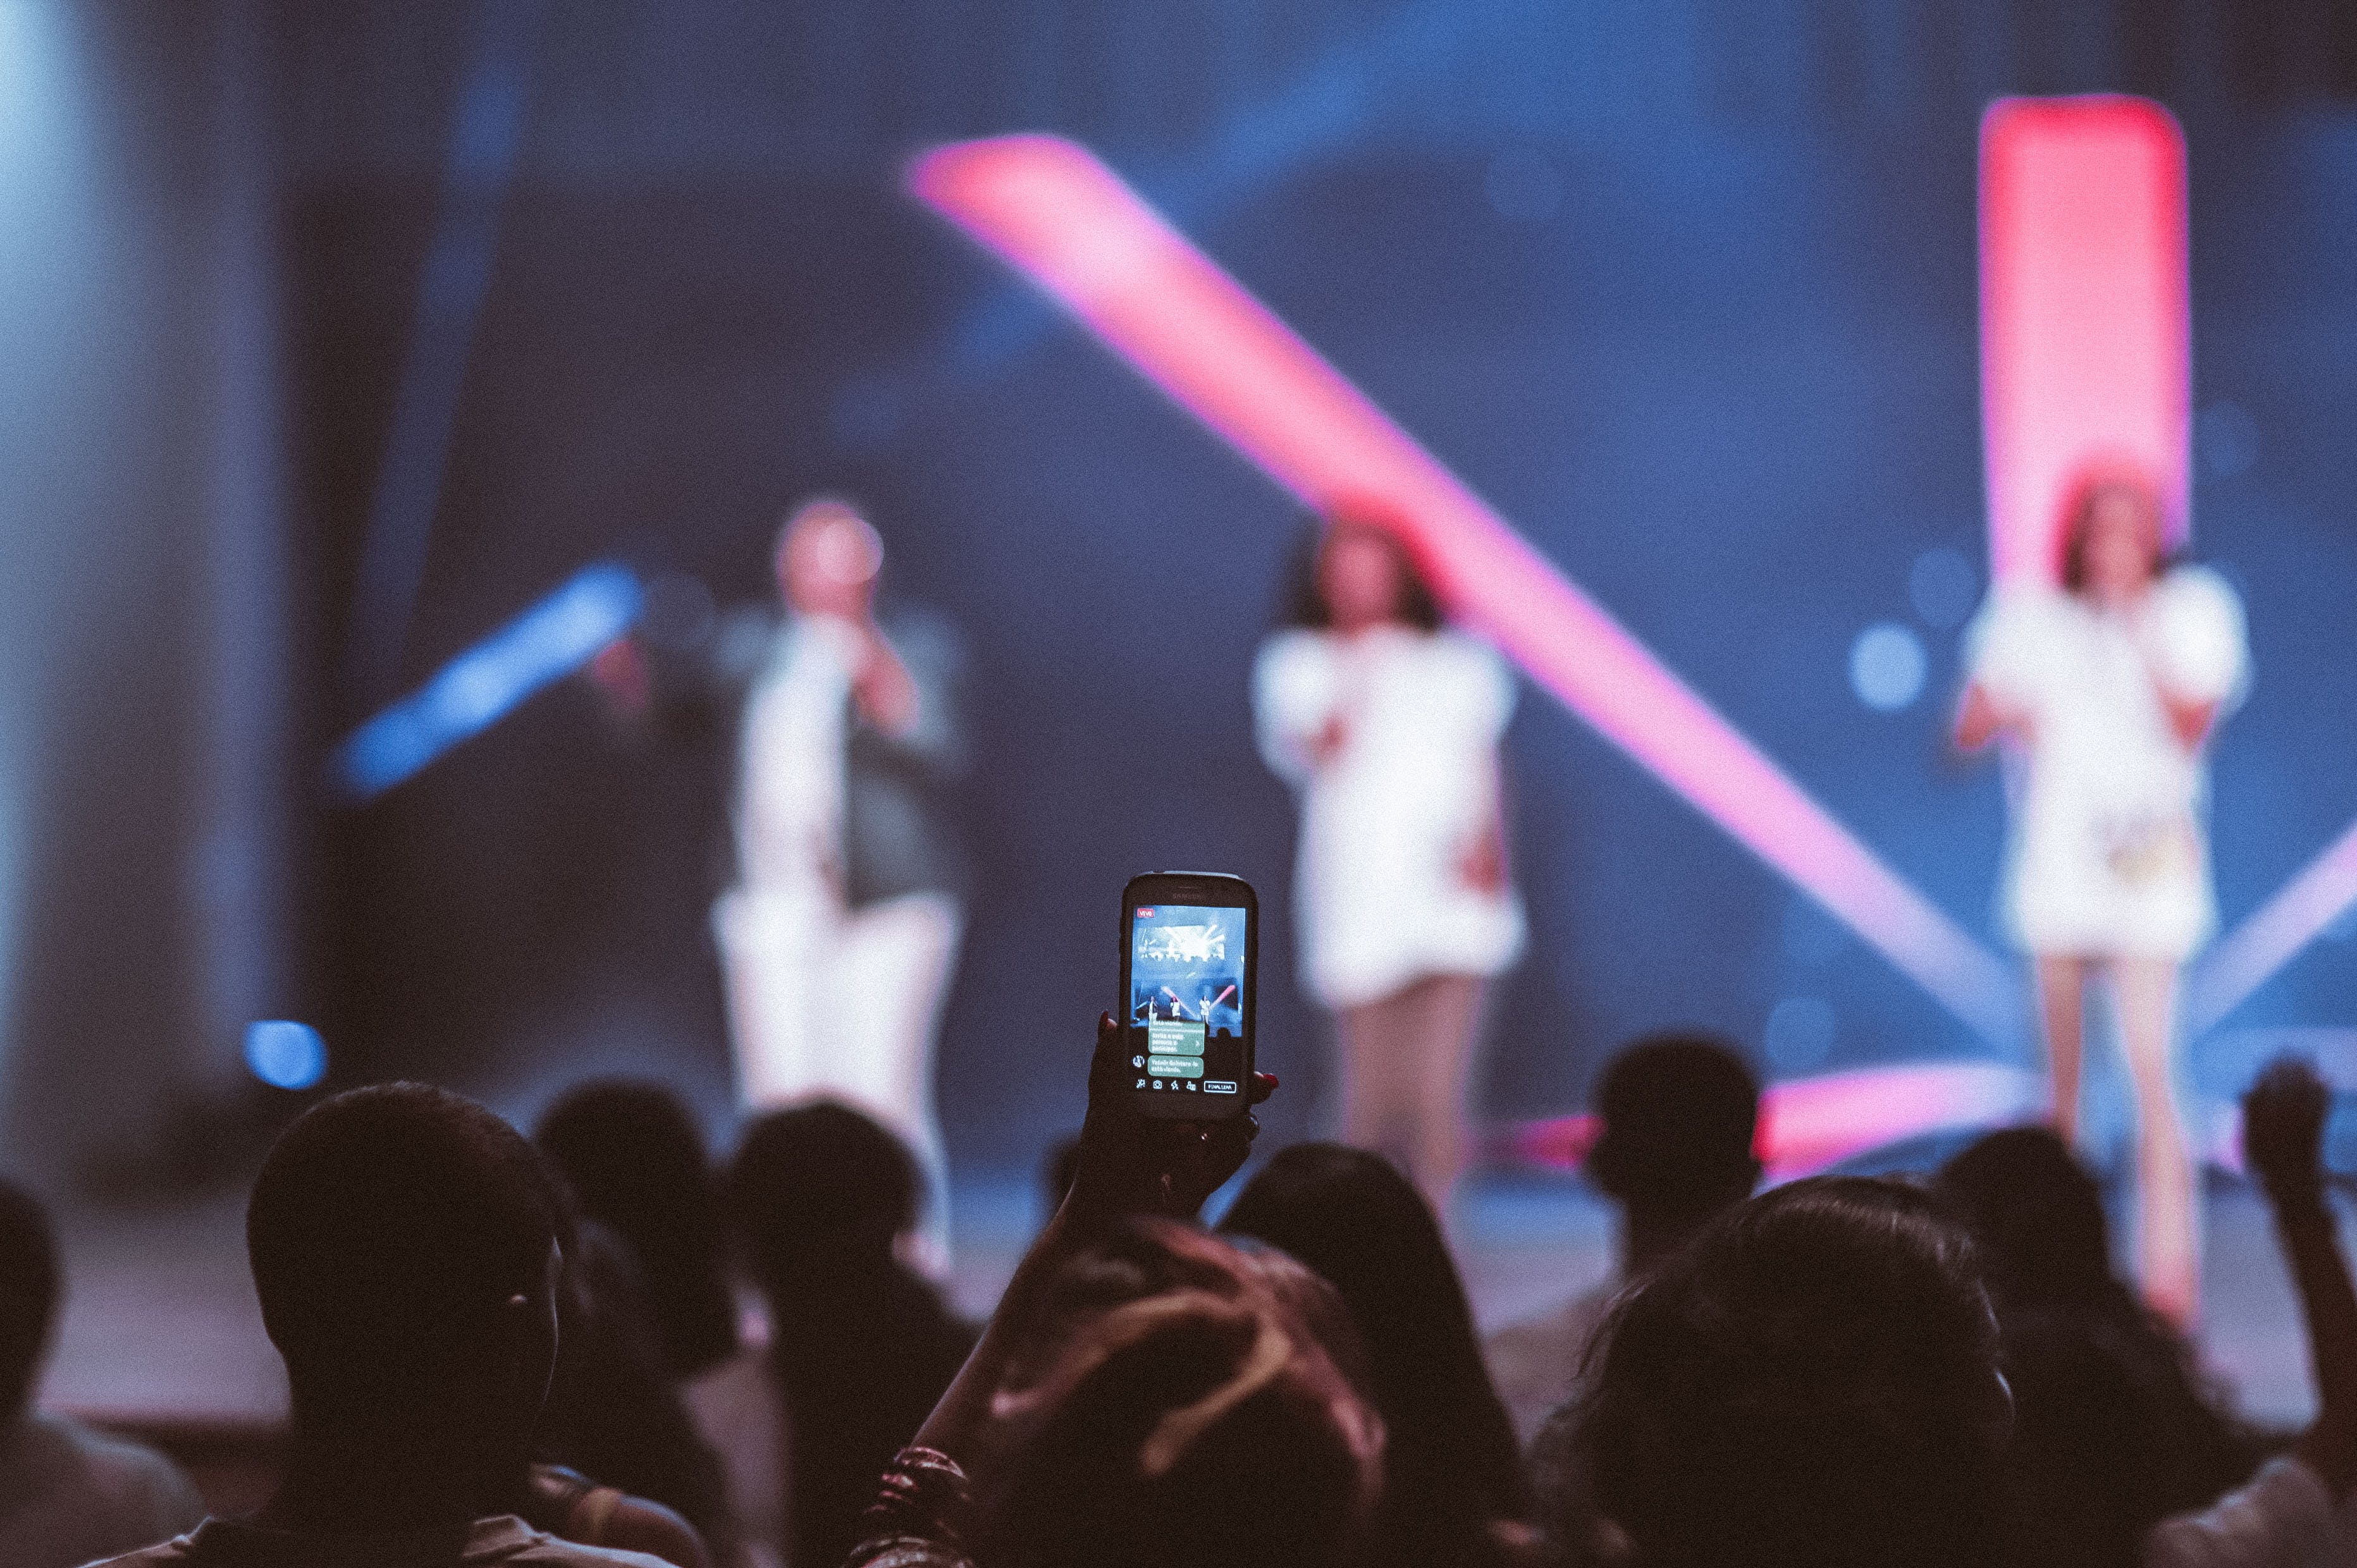 Shallow Focus of Smartphone Videoing Concert